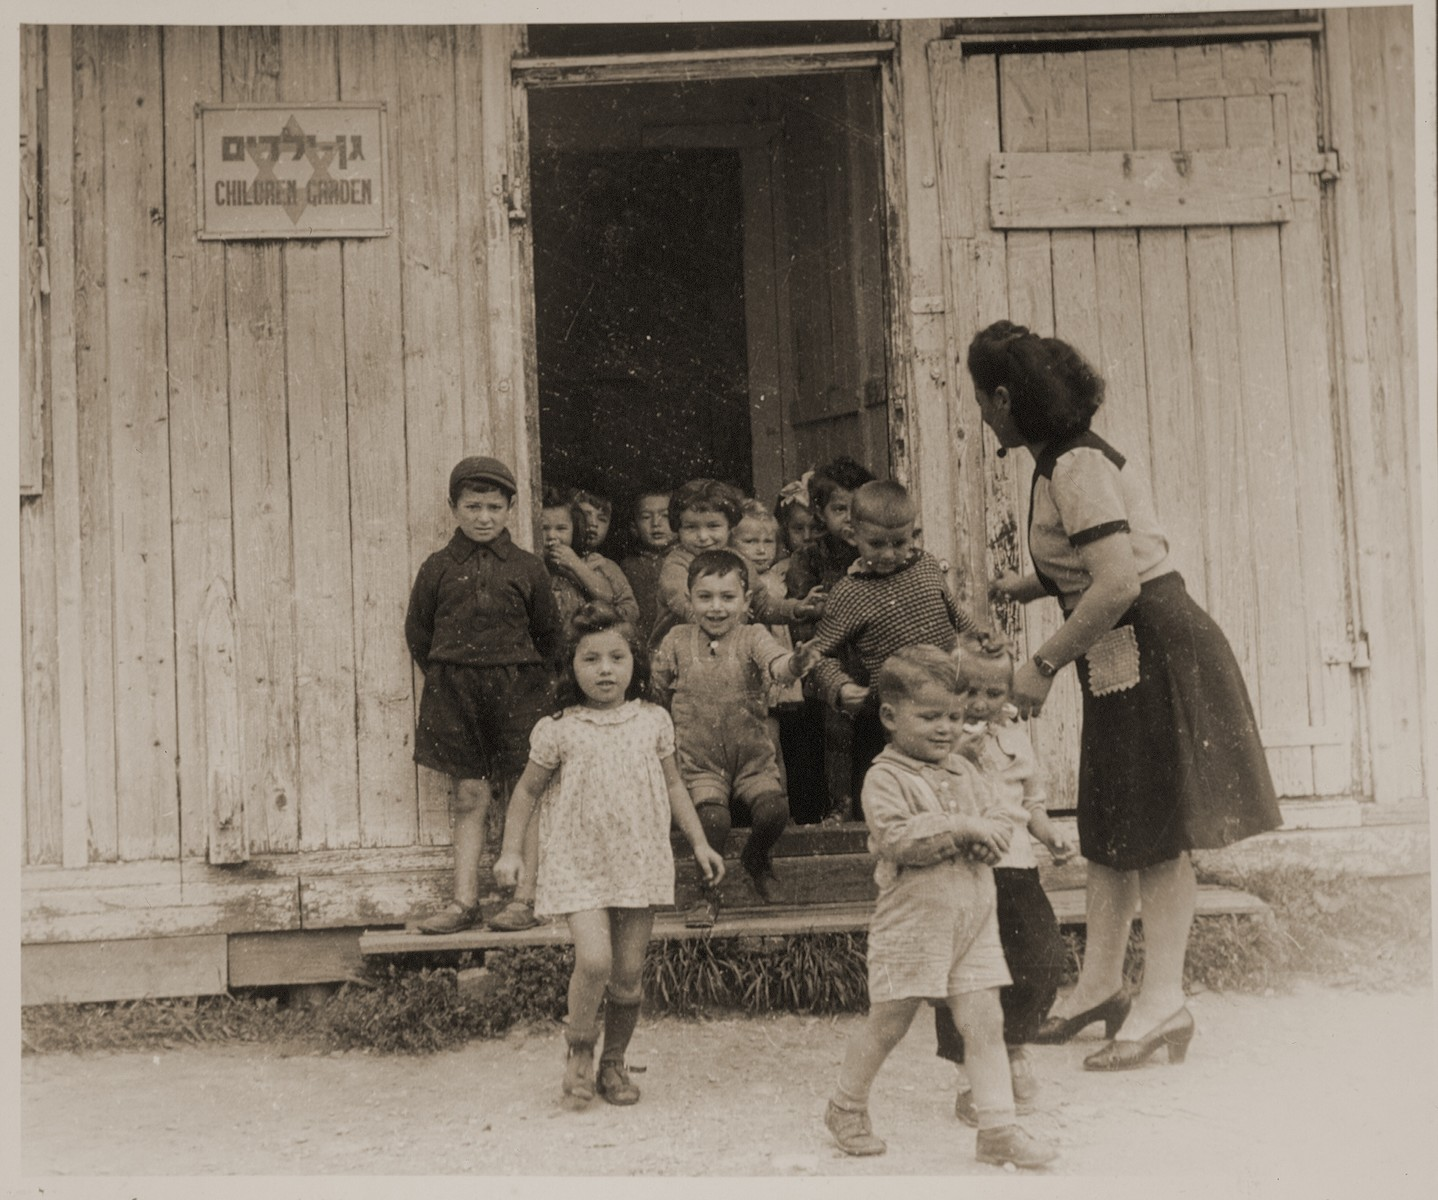 "A teacher ushers children through a doorway of a kindergarten in a DP camp in Sankt Marien.  Family album bearing the title ""Motoring/Jewish DP camp/St. Marein [Sankt Marien]/School,"" that belonged to Moritz Friedler.  In 1946 and 1947, he served as a social worker with the Jewish Committee for Relief Abroad at the Sankt Marien DP camp in the British zone of Austria. Friedler subsequently became the JDC's Area Director in Linz, Austria.  The photo album documents Jewish DP life in both places."